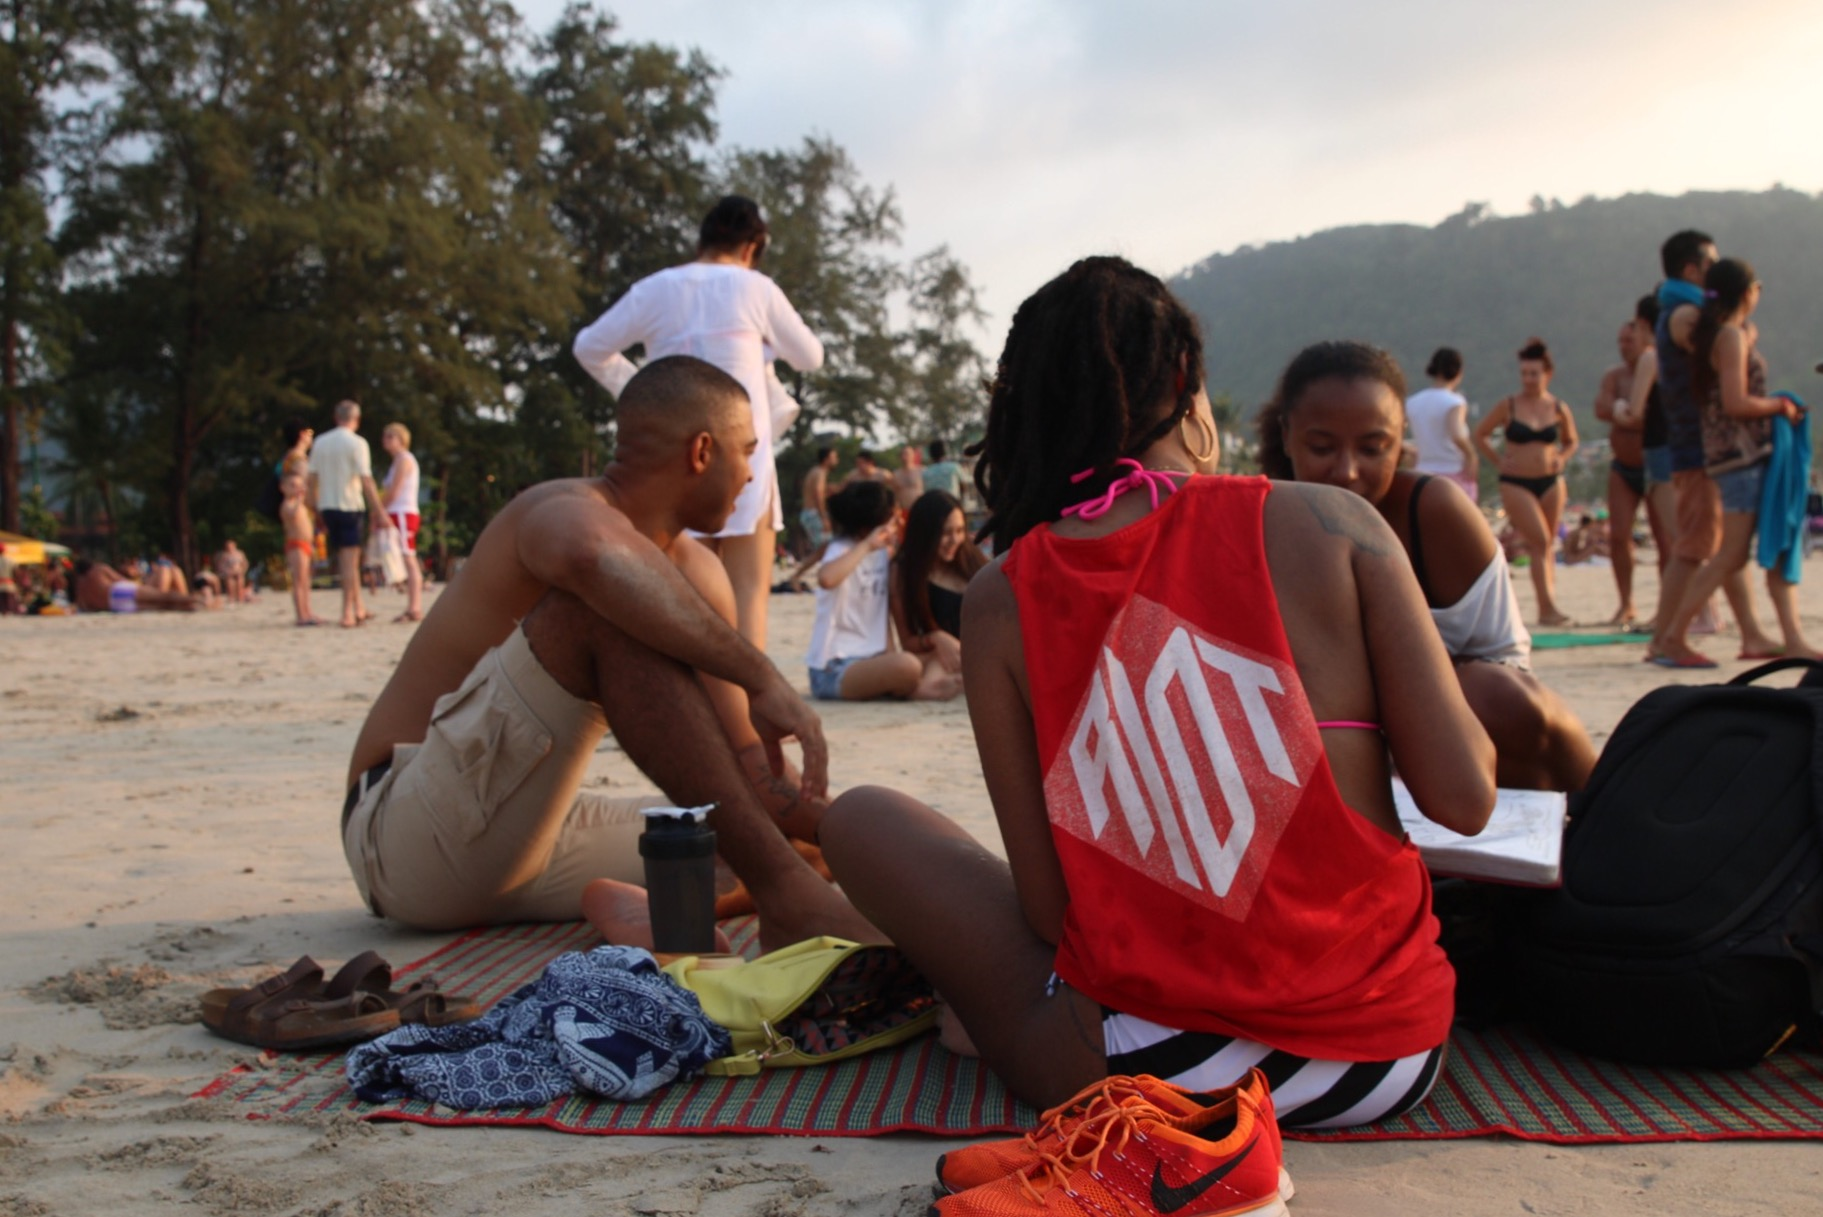 Chilling with another traveling couple on Patong Beach in Phuket, Thailand.